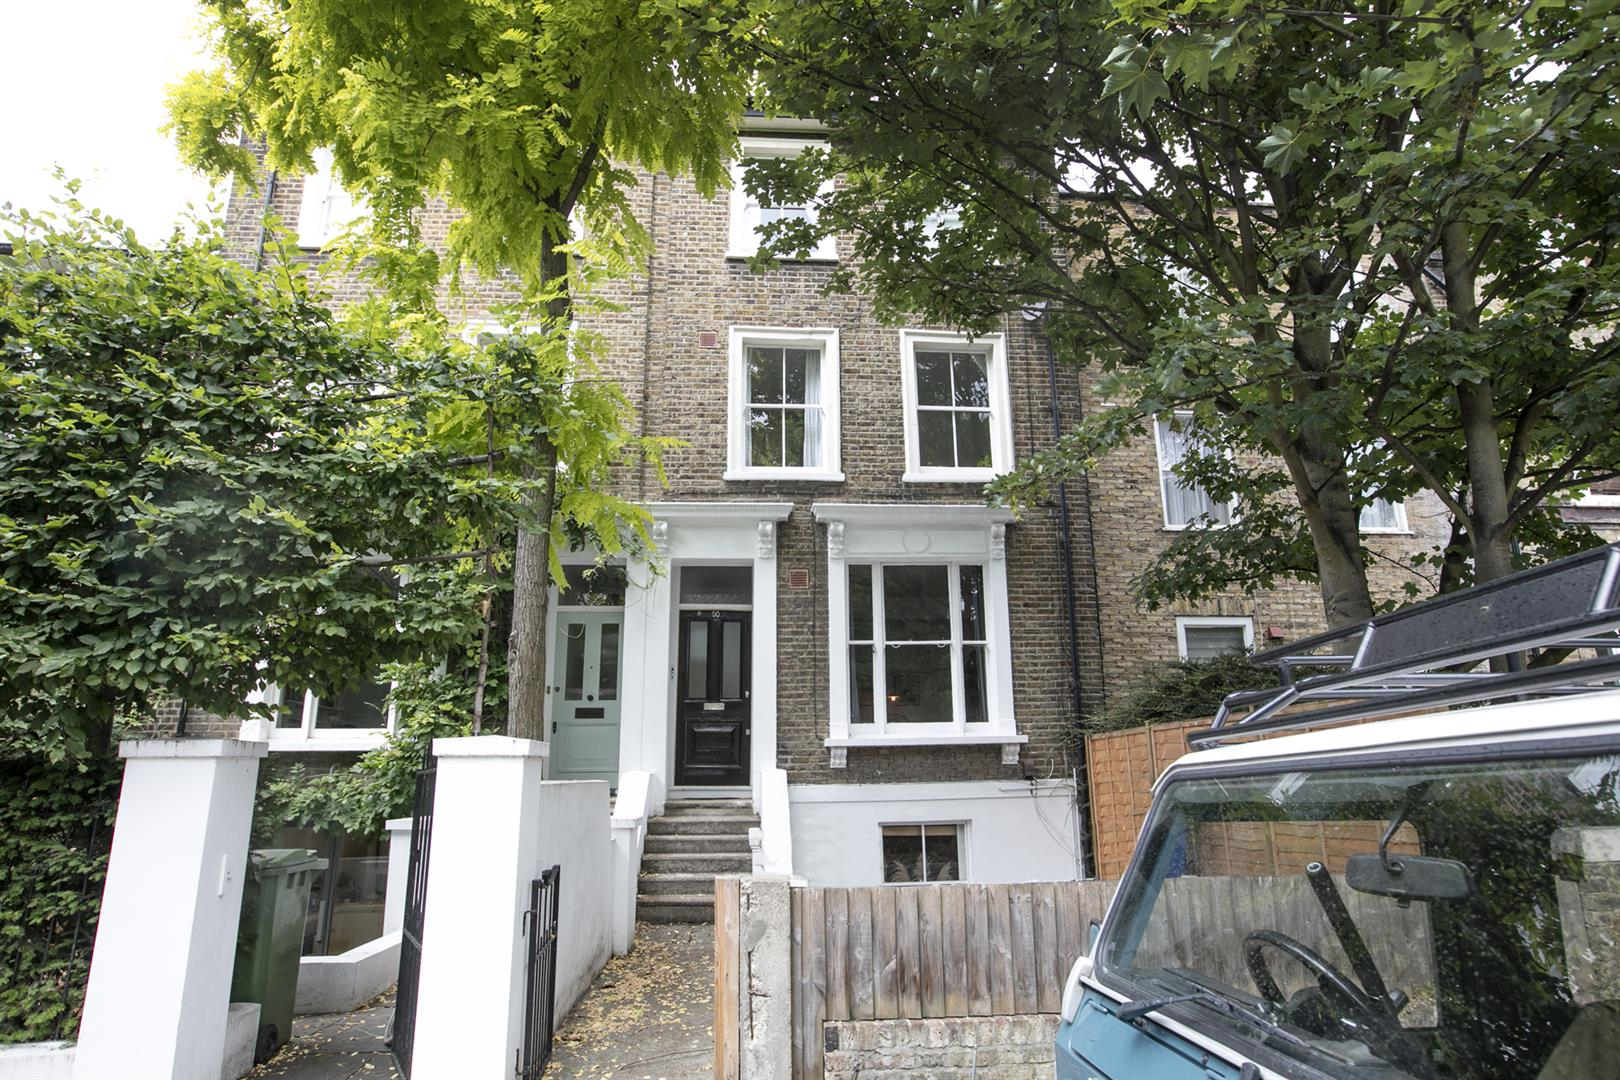 Flat - Conversion Sale Agreed in Talfourd Road, London 643 view1